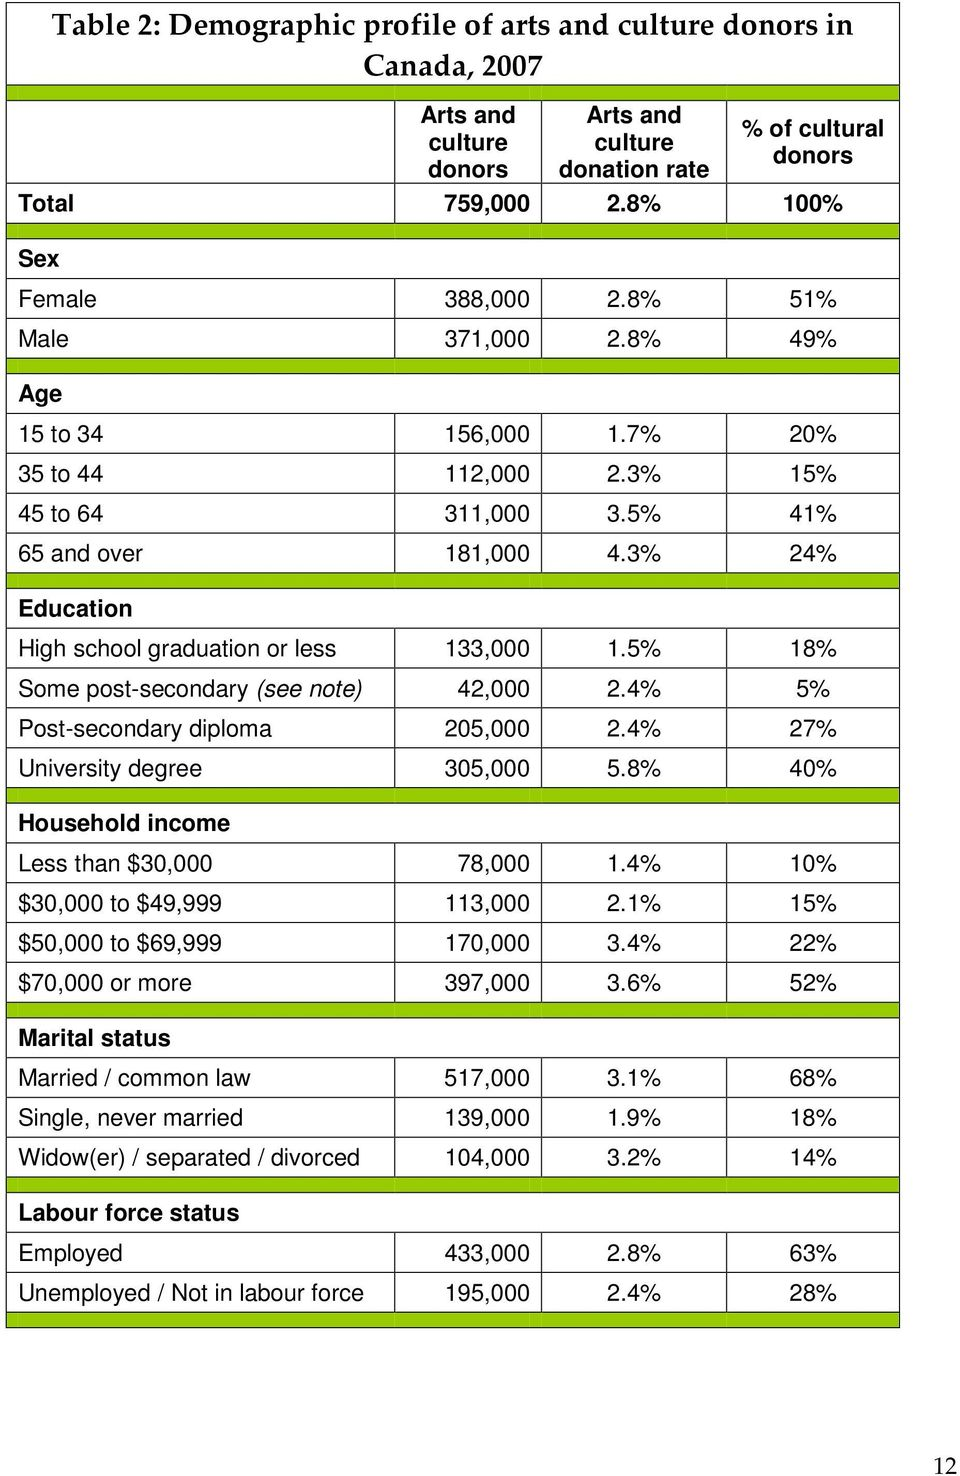 5% 18% Some post-secondary (see note) 42,000 2.4% 5% Post-secondary diploma 205,000 2.4% 27% University degree 305,000 5.8% 40% Household income Less than $30,000 78,000 1.